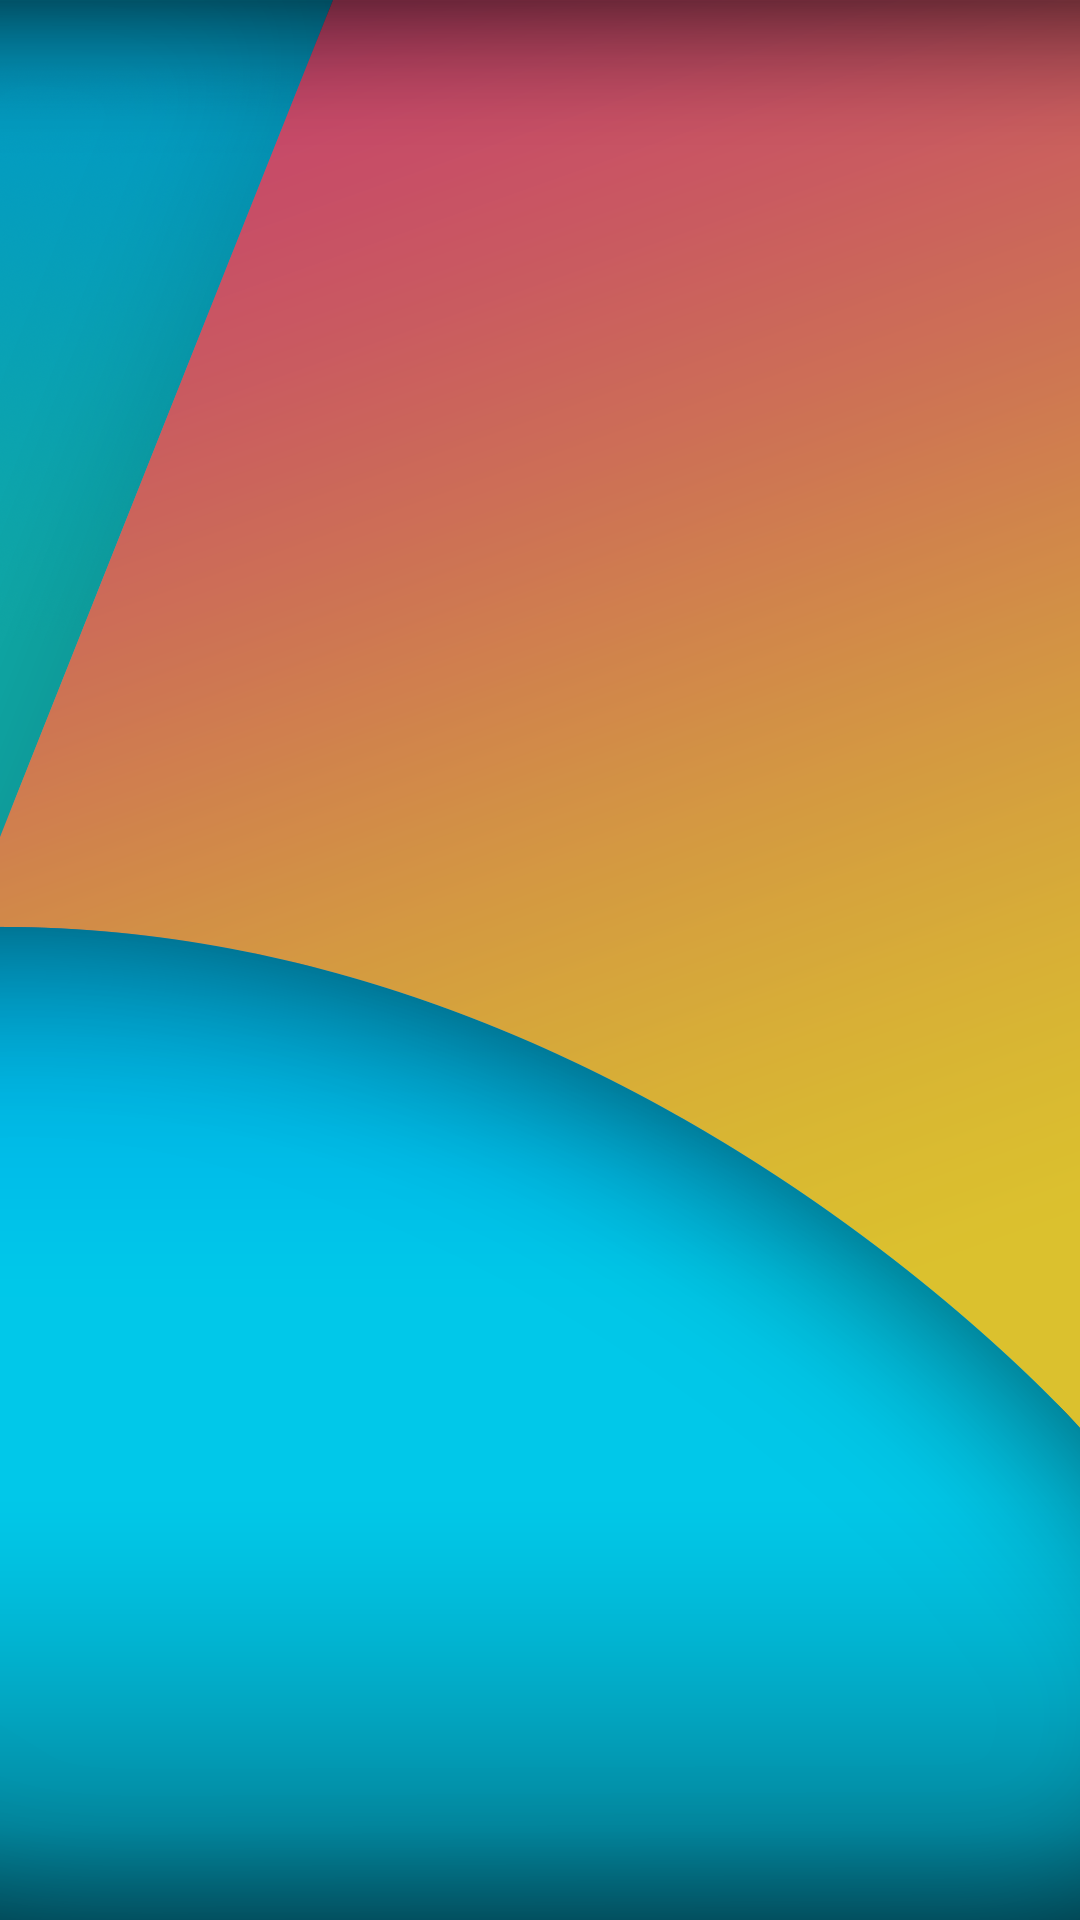 nexus 5 stock wallpaper a· android 4 4 kitkat wallpaper